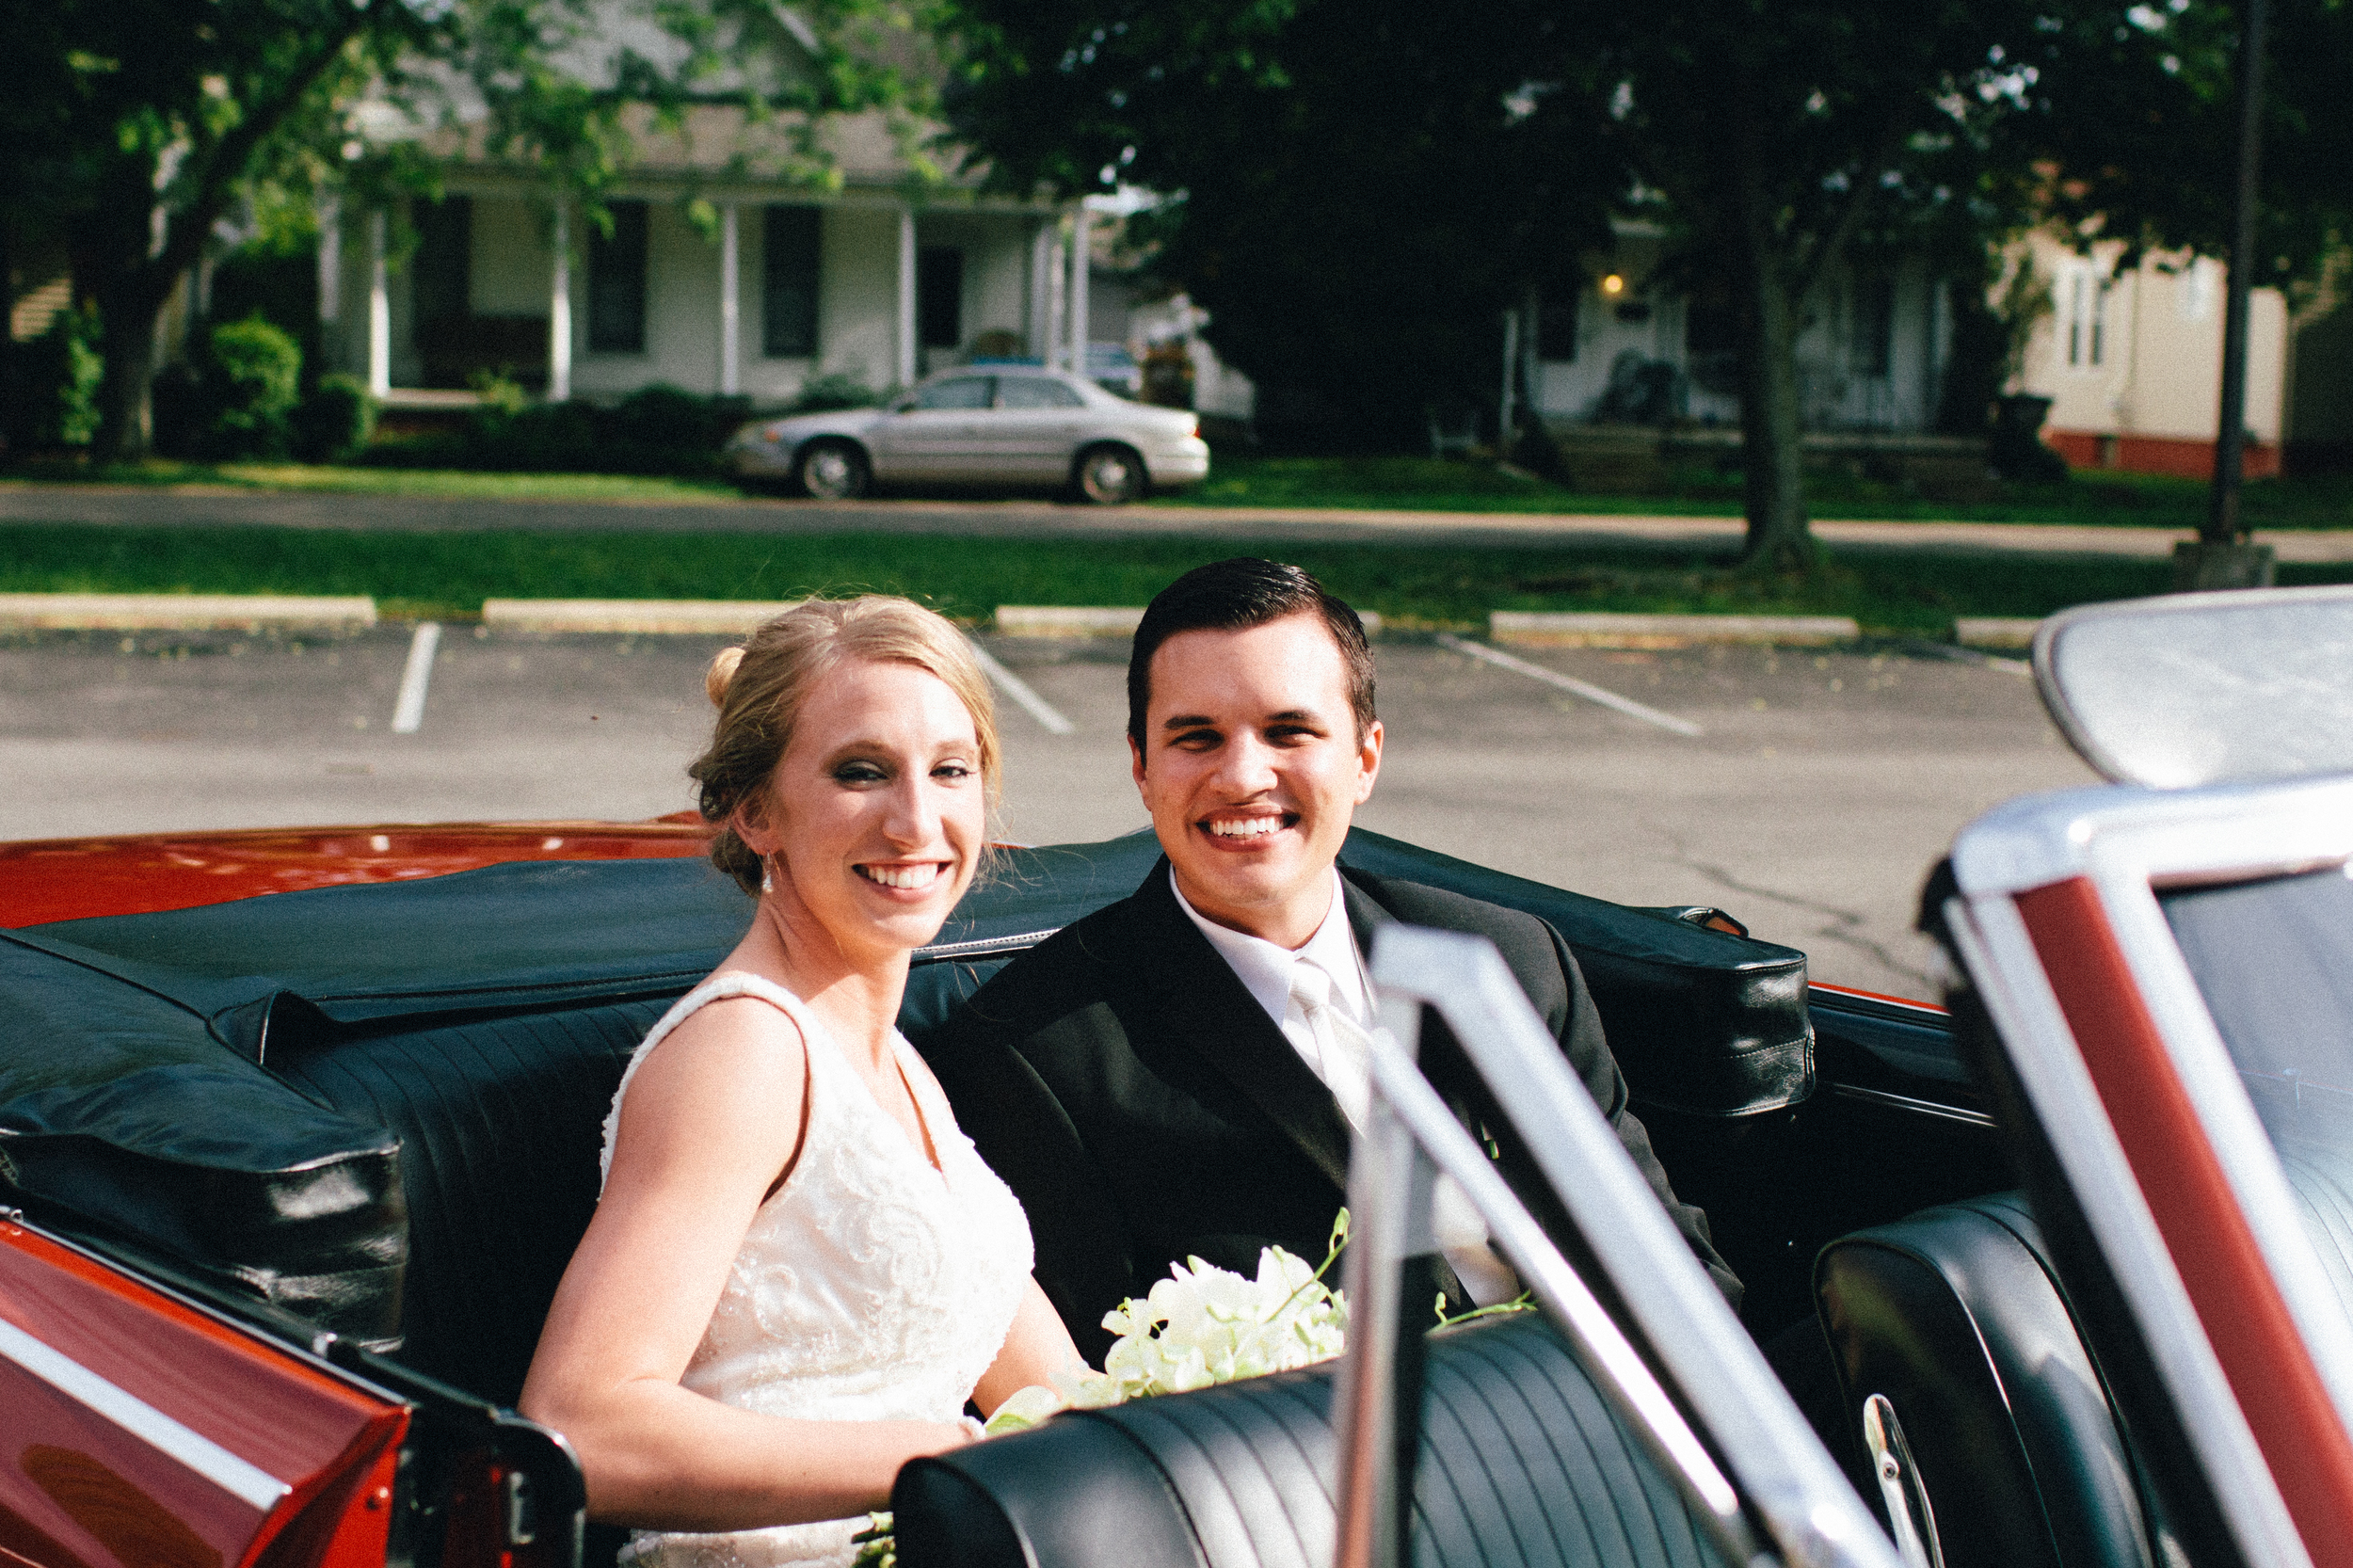 Andrew & Ande Color-6170.jpg